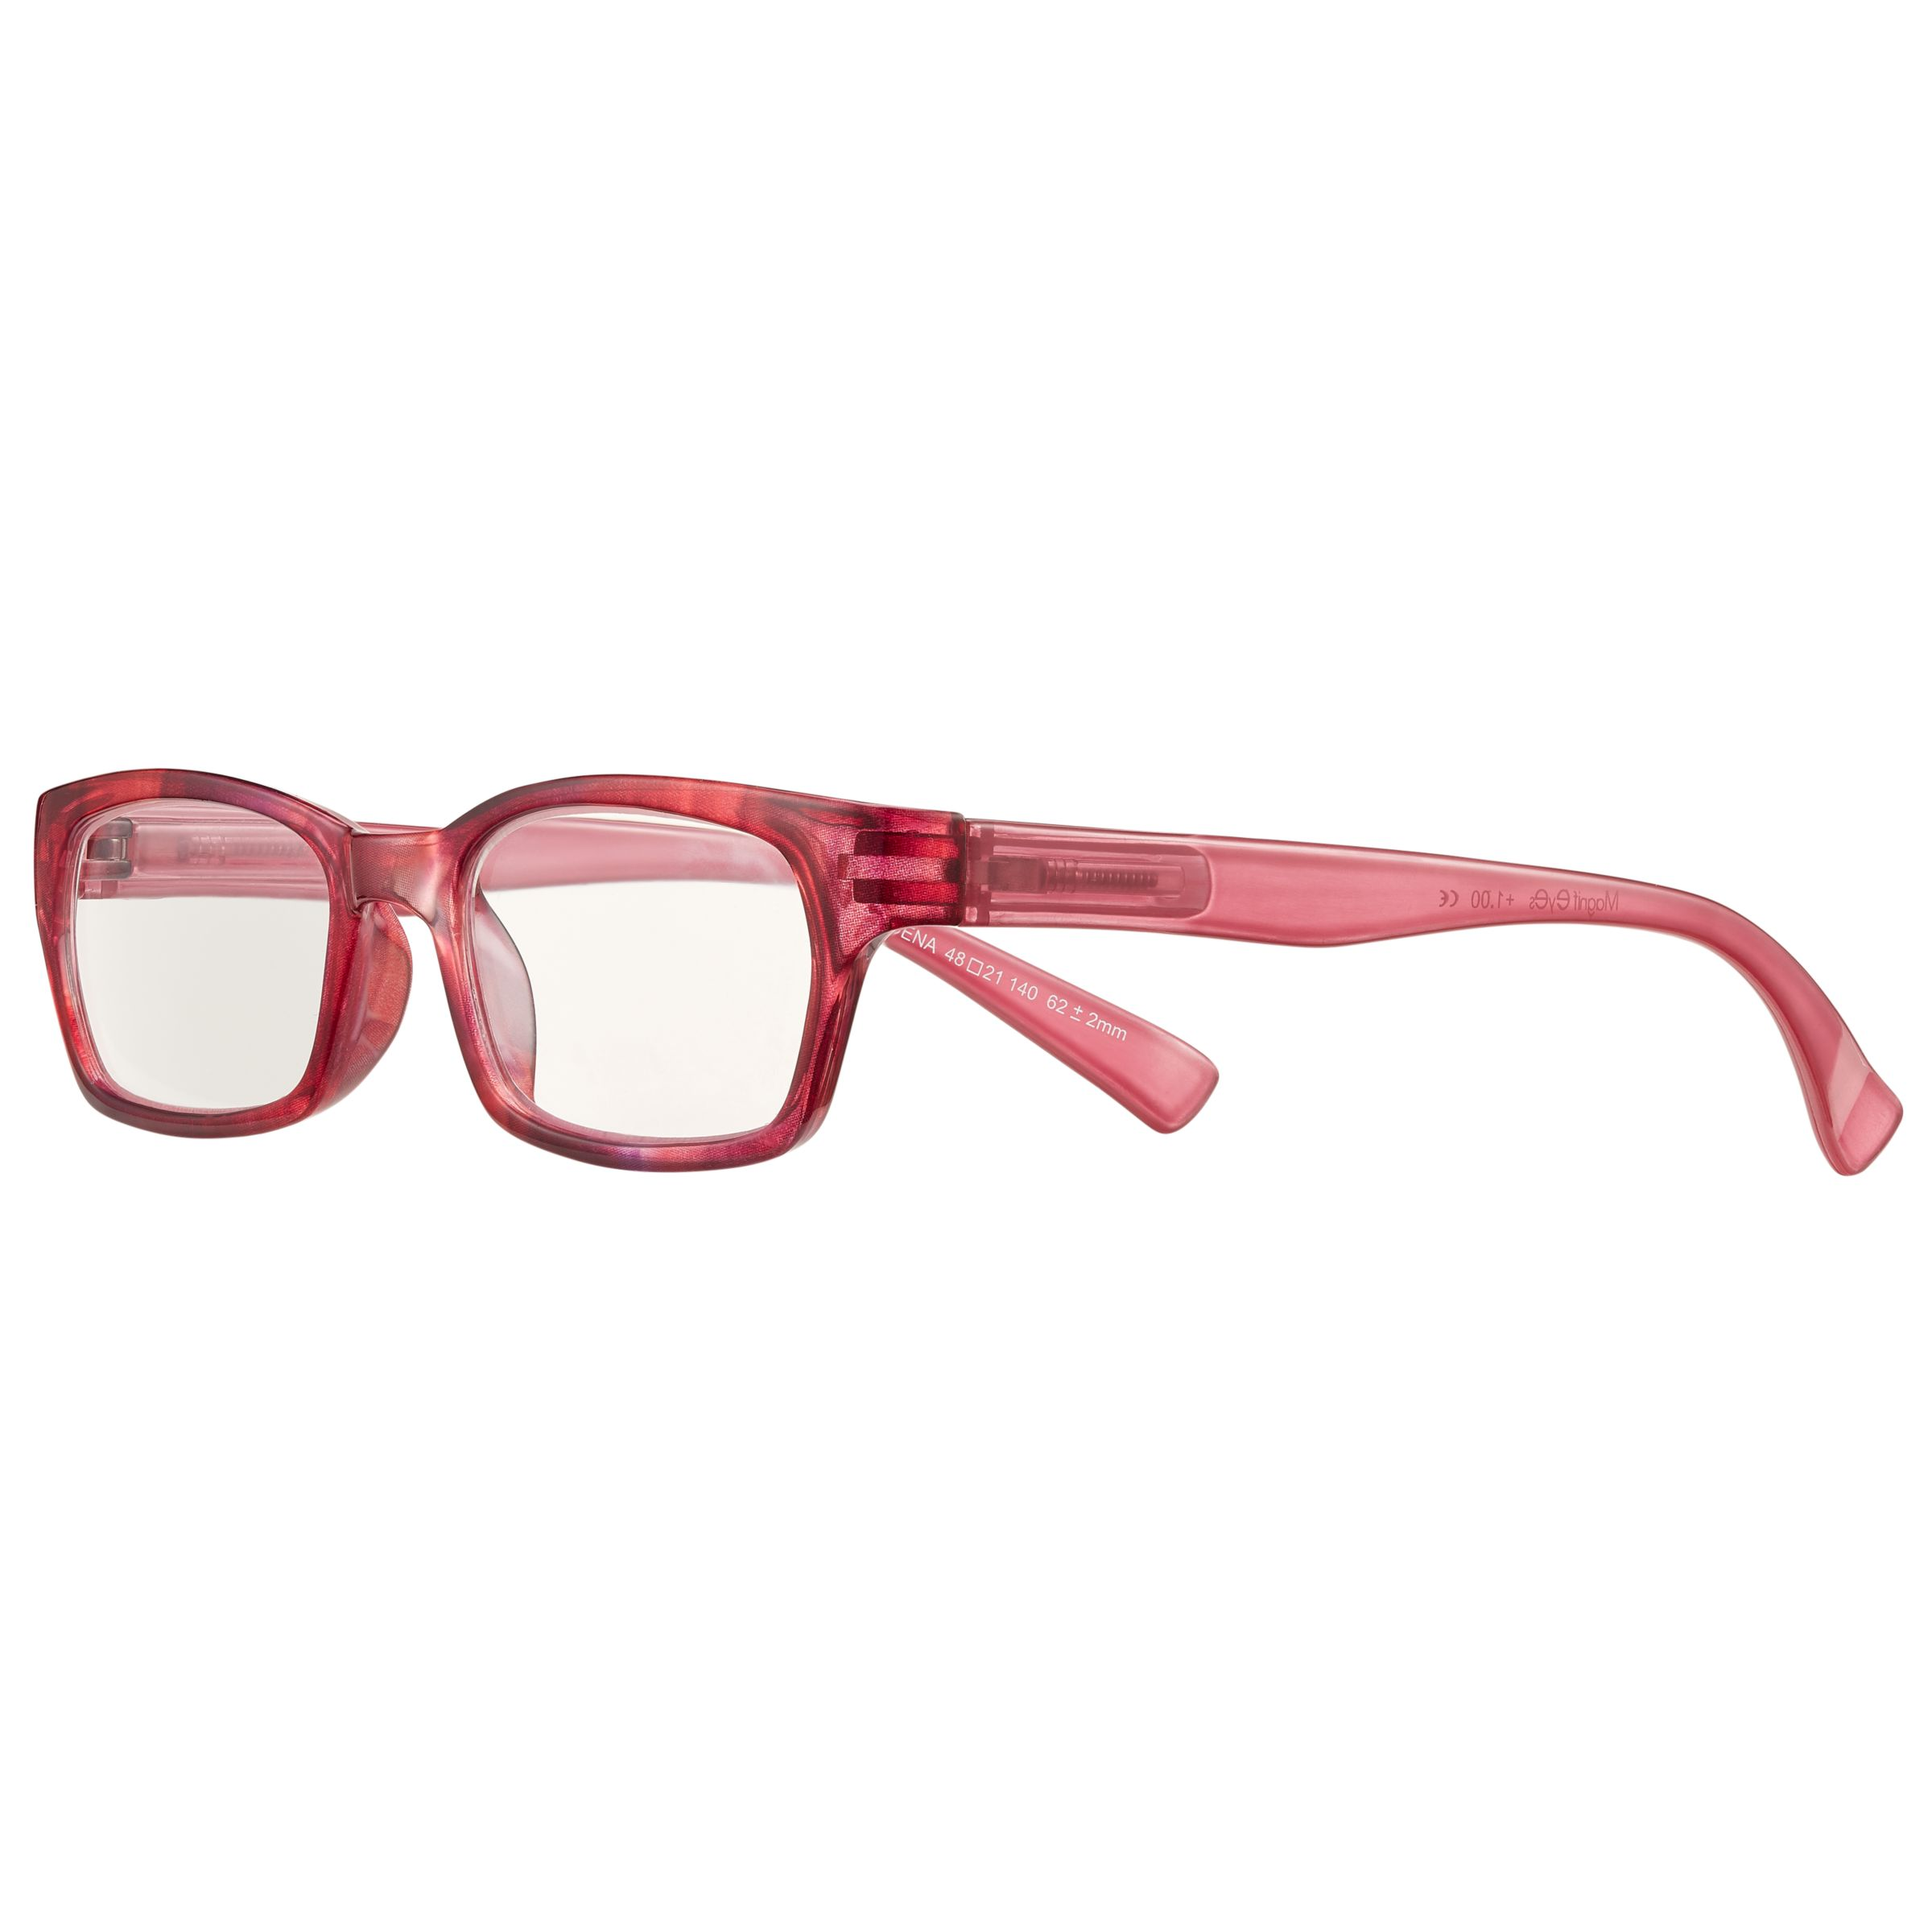 John Lewis Catalogue - Glasses from John Lewis at ...